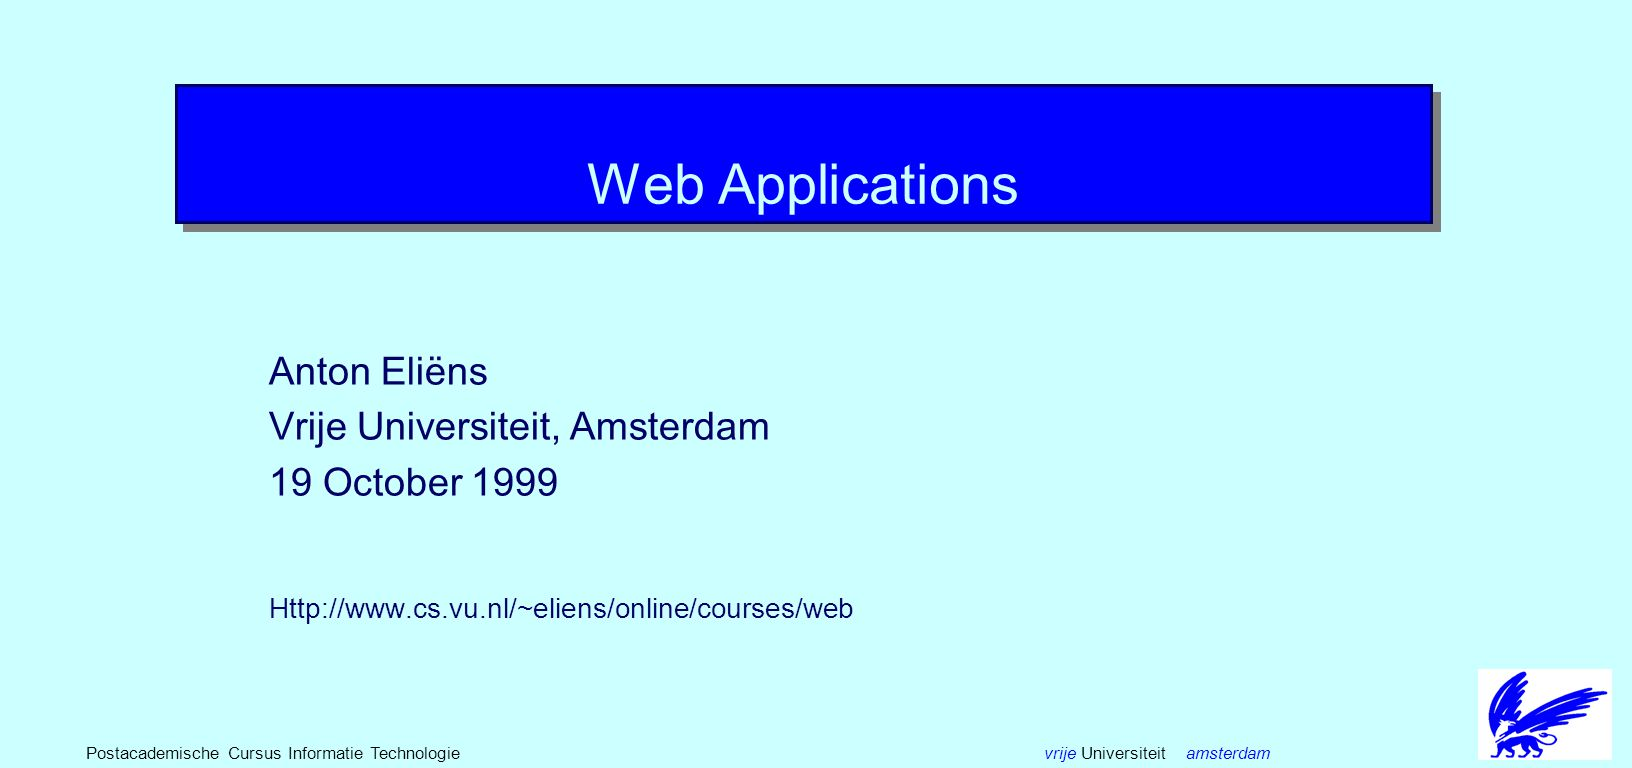 vrije Universiteit amsterdamPostacademische Cursus Informatie Technologie Forms of communication asynchronous - email, news, ftp, http synchronous - IRC, MUD/MOO, chat face-to-face - audio/video conferencing